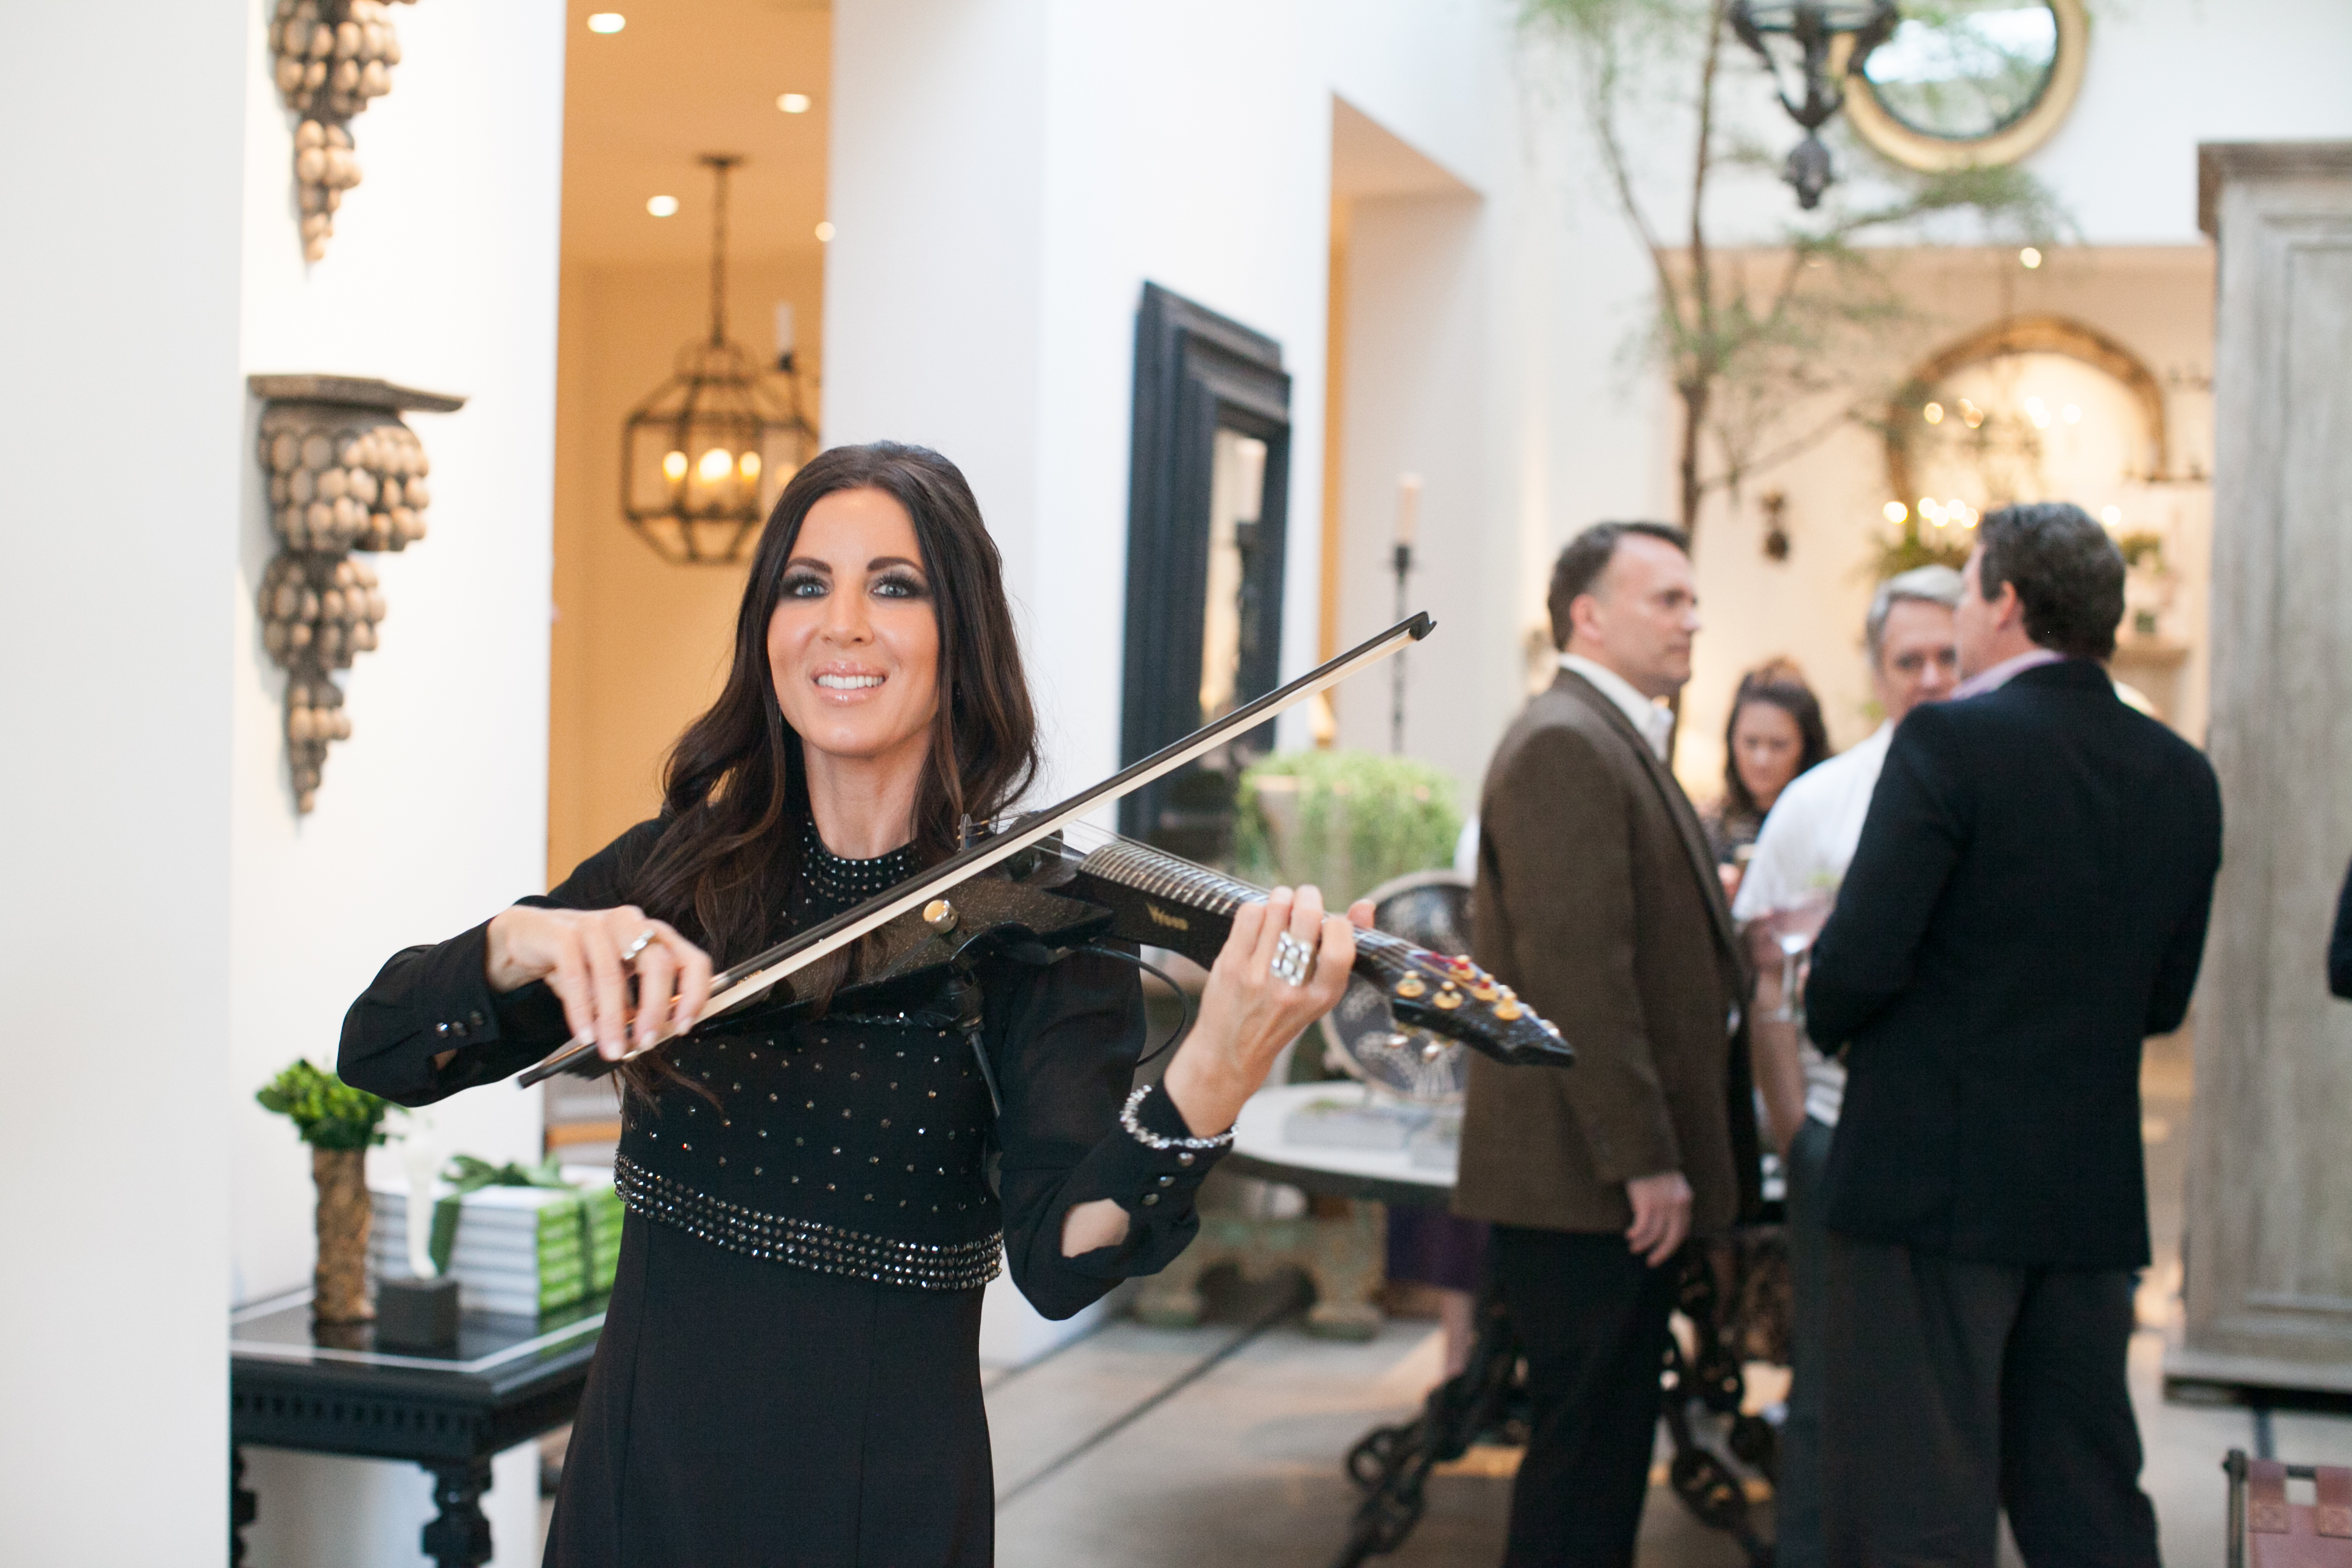 Electric violinist Jennifer Spingola provided entertainment for the evening.